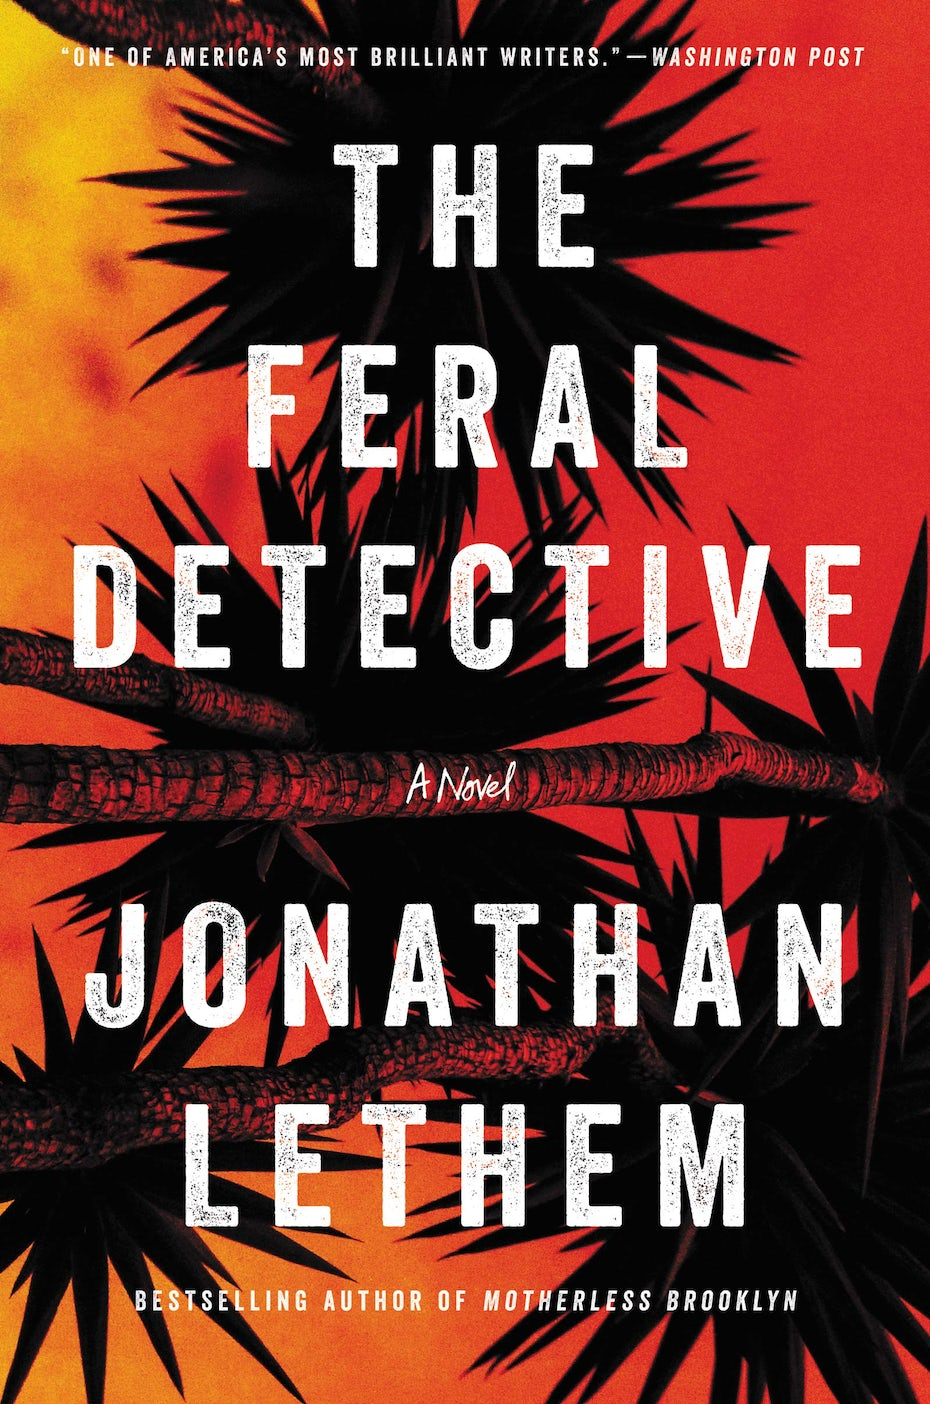 The feral detective book cover